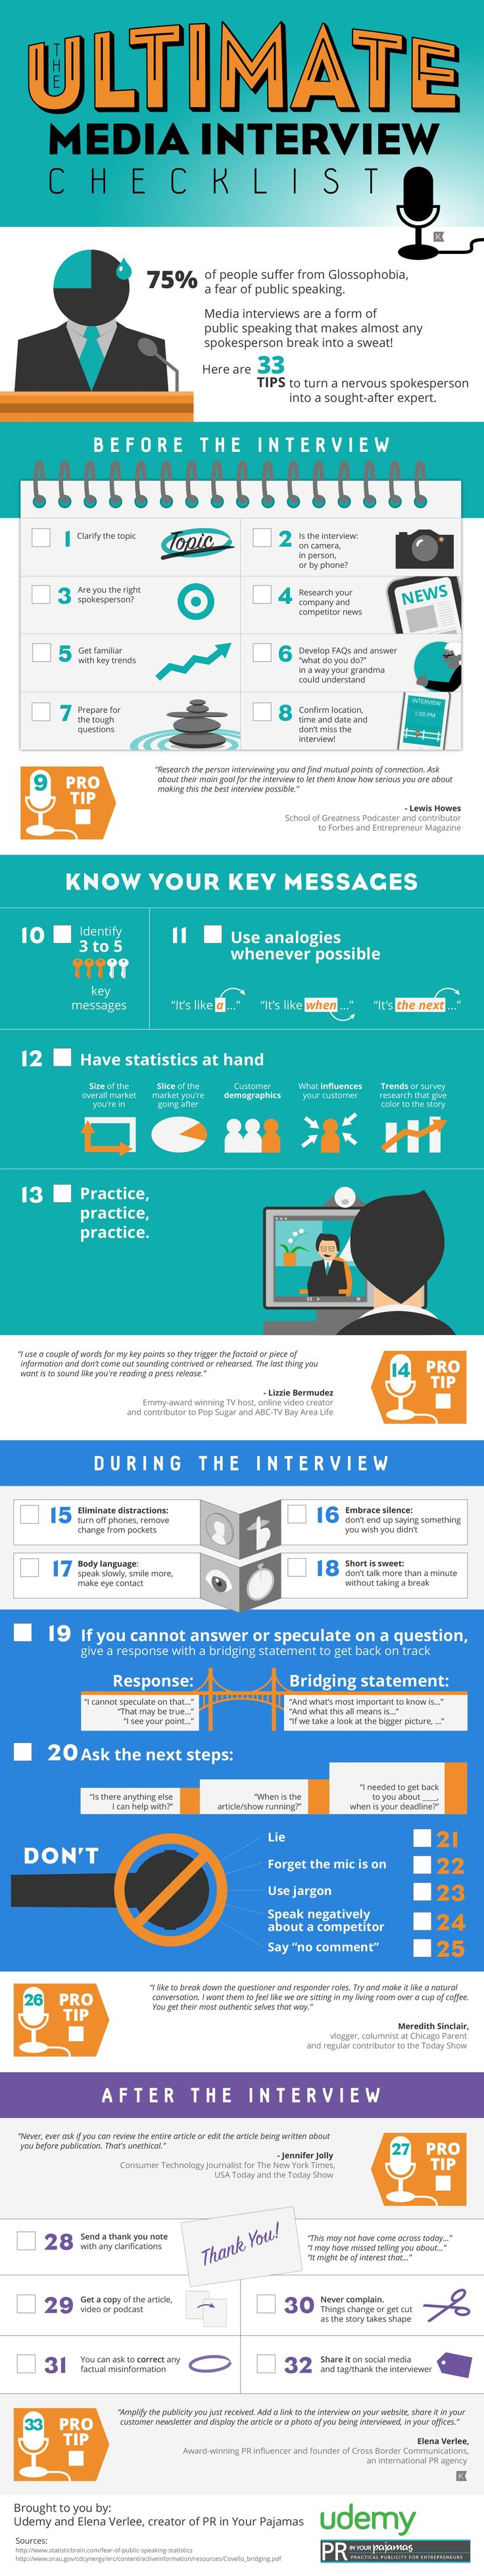 The Ultimate Media Interview Checklist Infographic placed